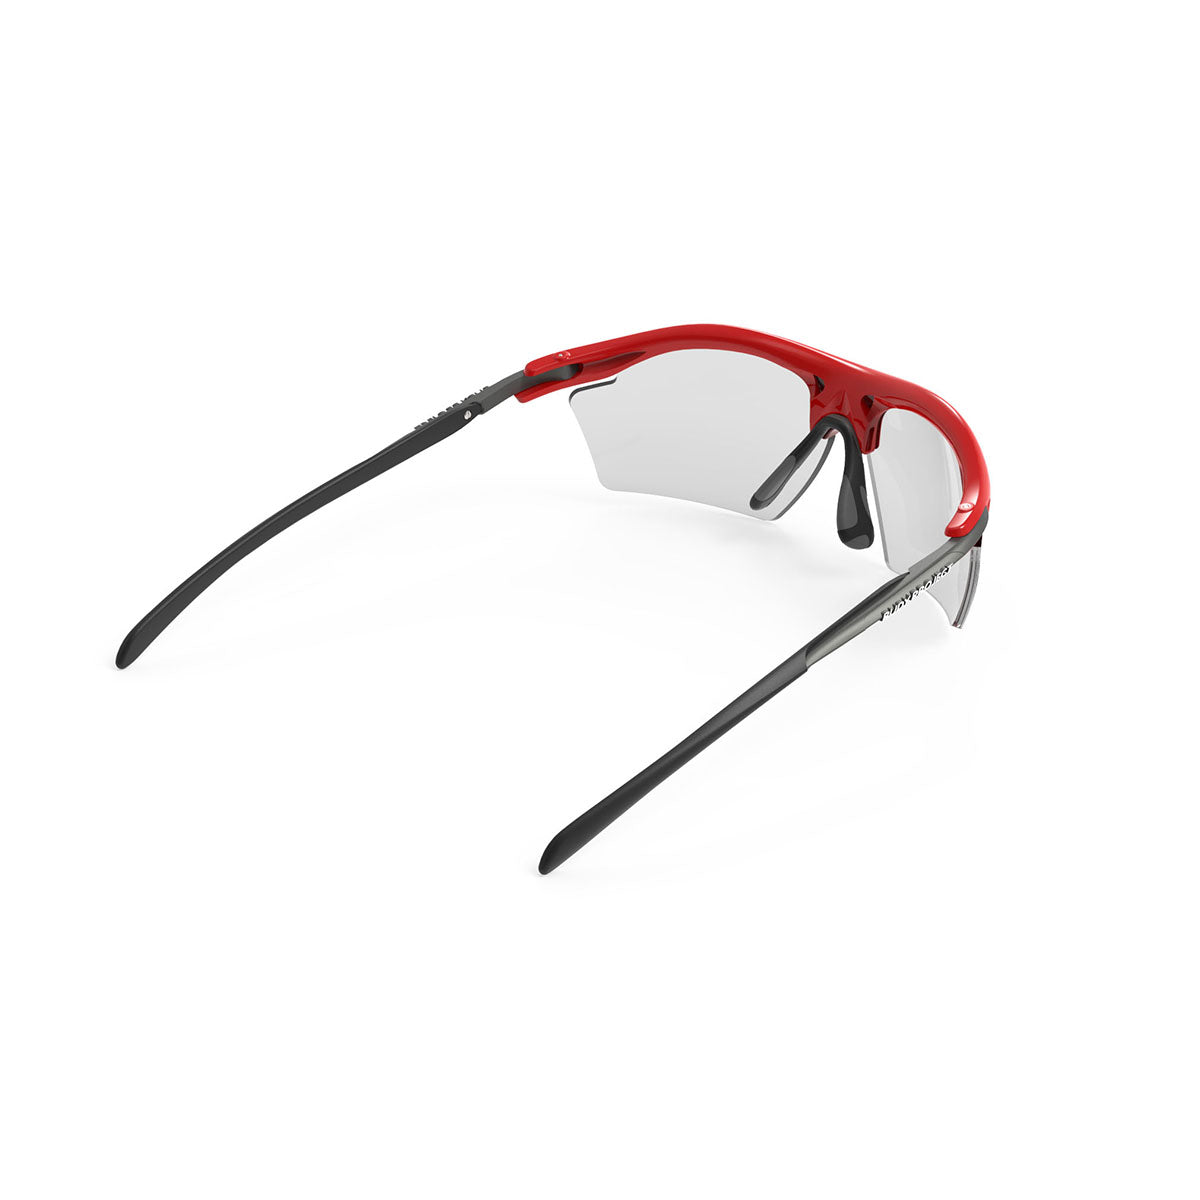 Rudy Project - Rydon Slim  - frame color: Fire Red Gloss - lens color: ImpactX-2 Photochromic Clear to Black - photo angle: Top Back Angle Variant Hover Image